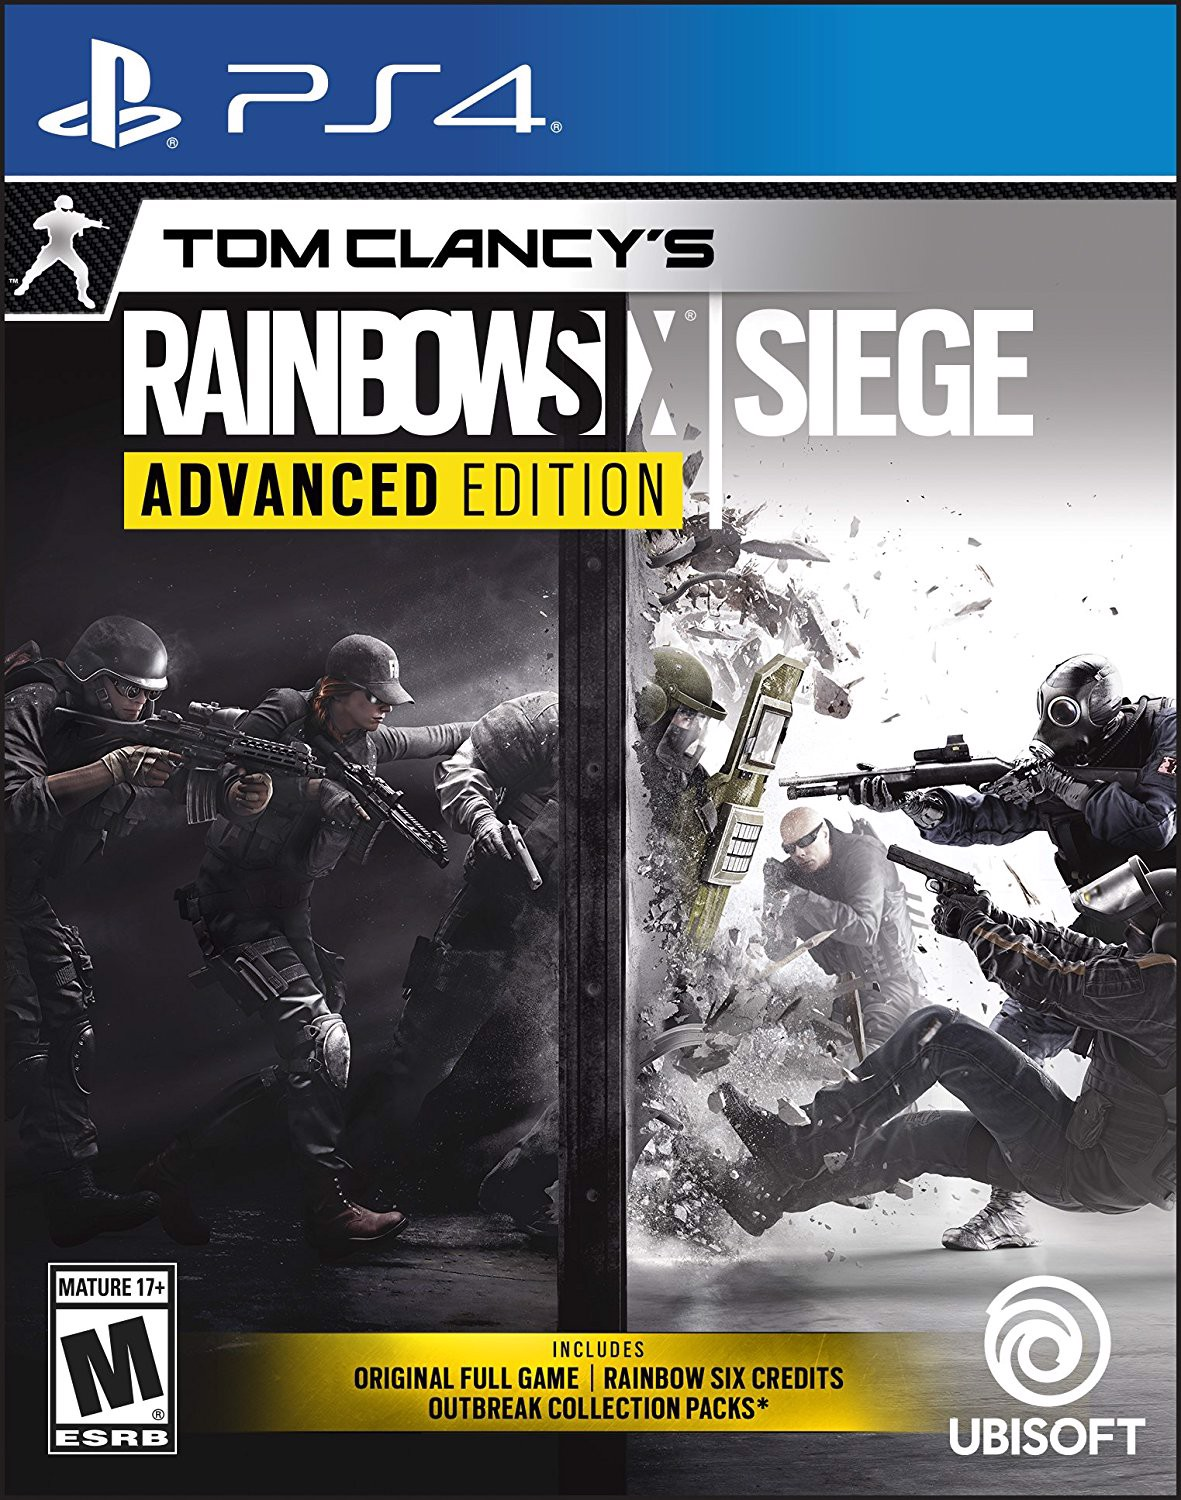 552 - Tom Clancy's Rainbow Six Siege Advanced Edition -ASIA